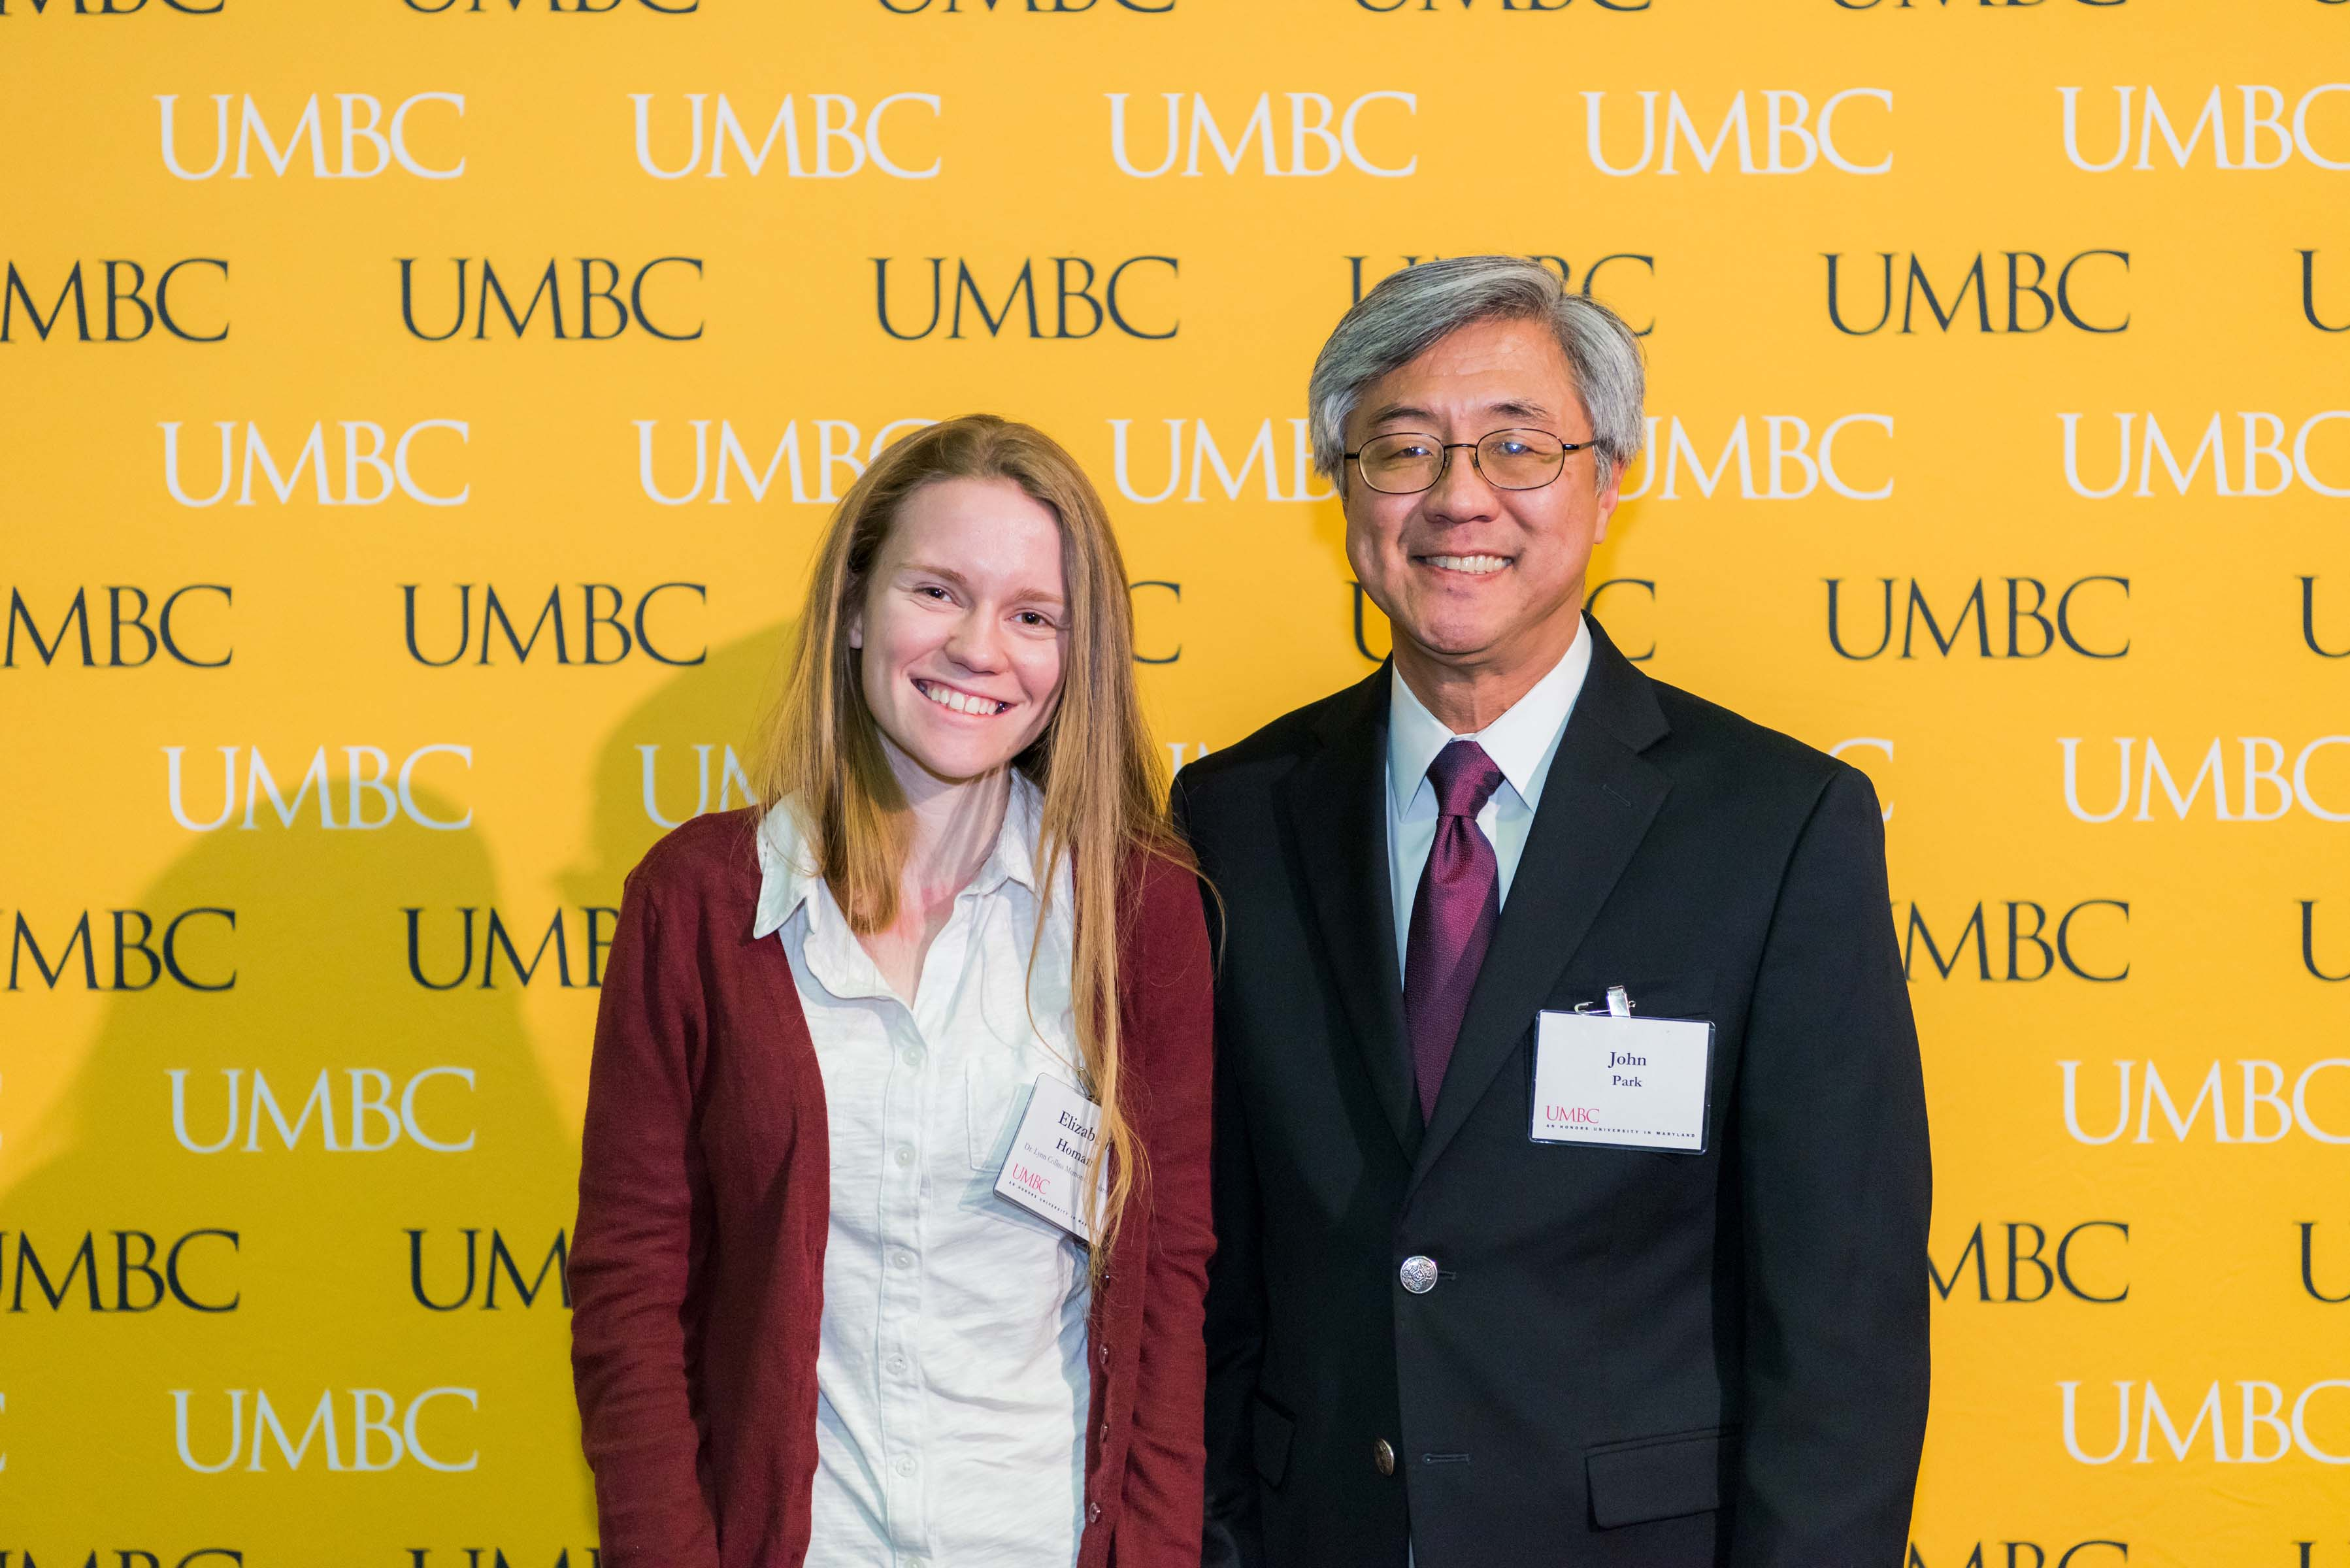 Two people pose in front of the UMBC wall at the scholarship luncheon